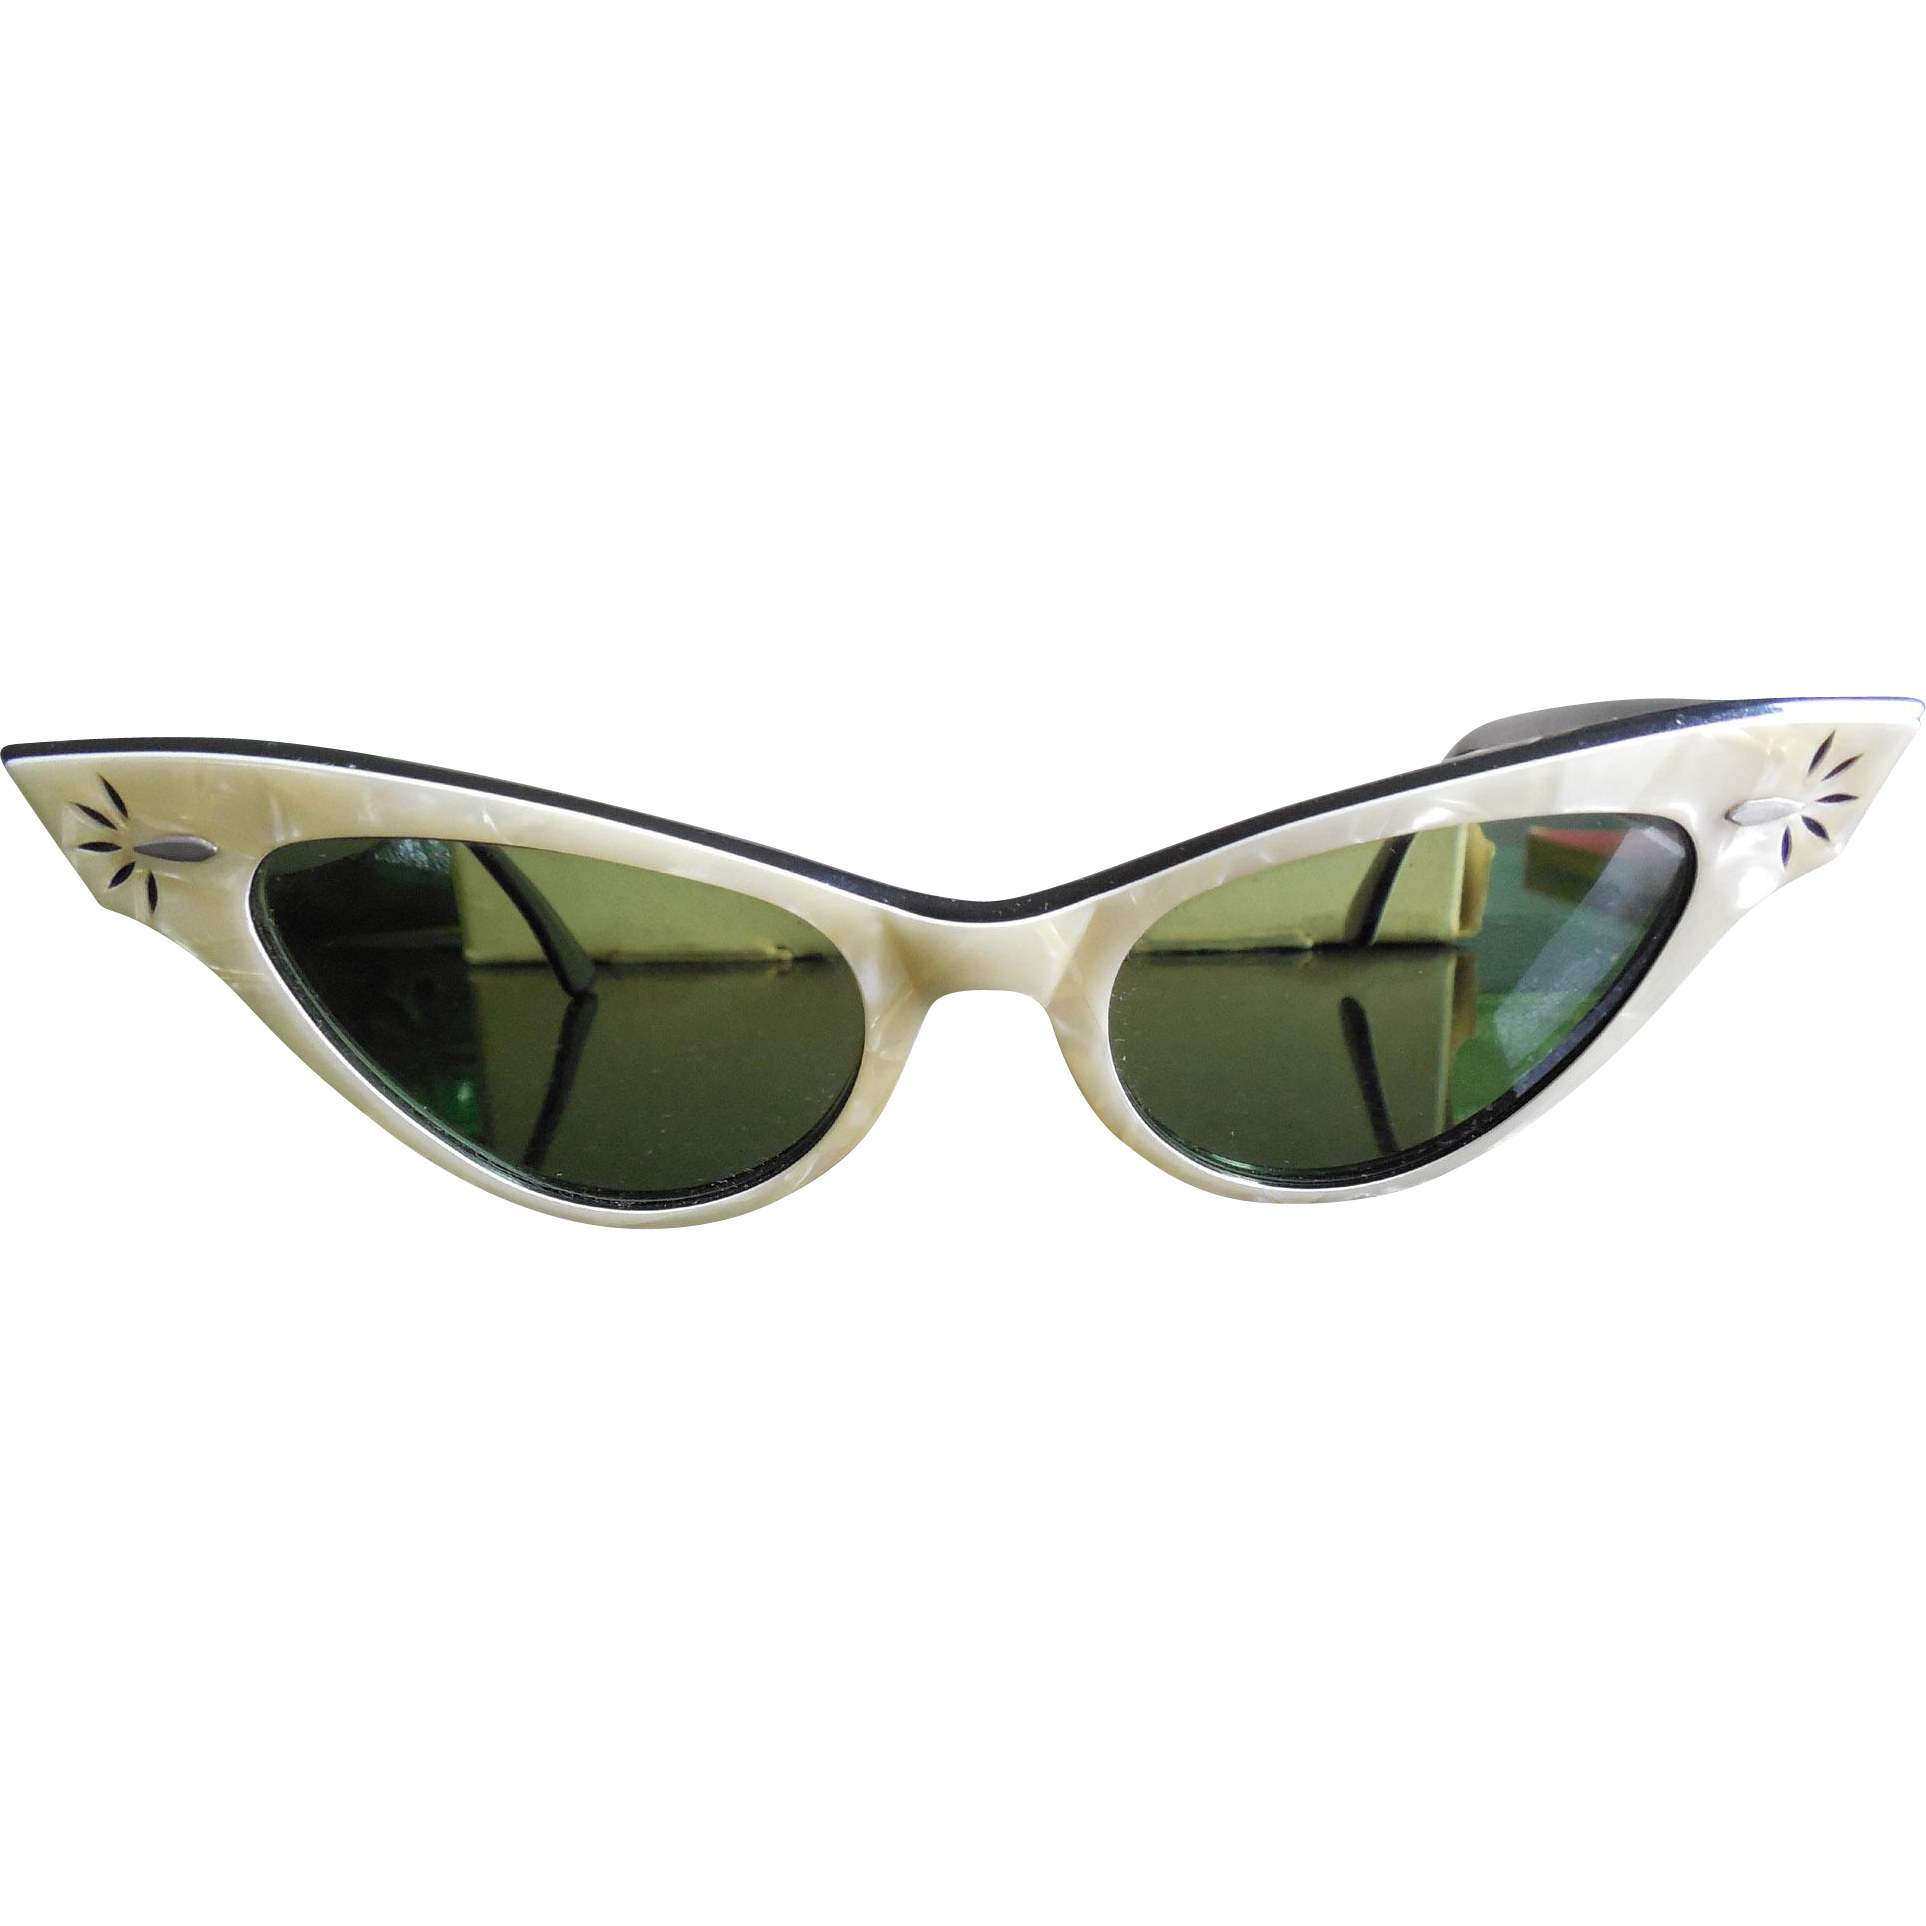 e7e2fd43e1d Vintage 1950s 1960s B L Ray Ban Cat Eye Sunglasses Pearl   Black in Leather  Case - Vintage 1960s Fashion Clothing and Accessories at Ruby Lane ...